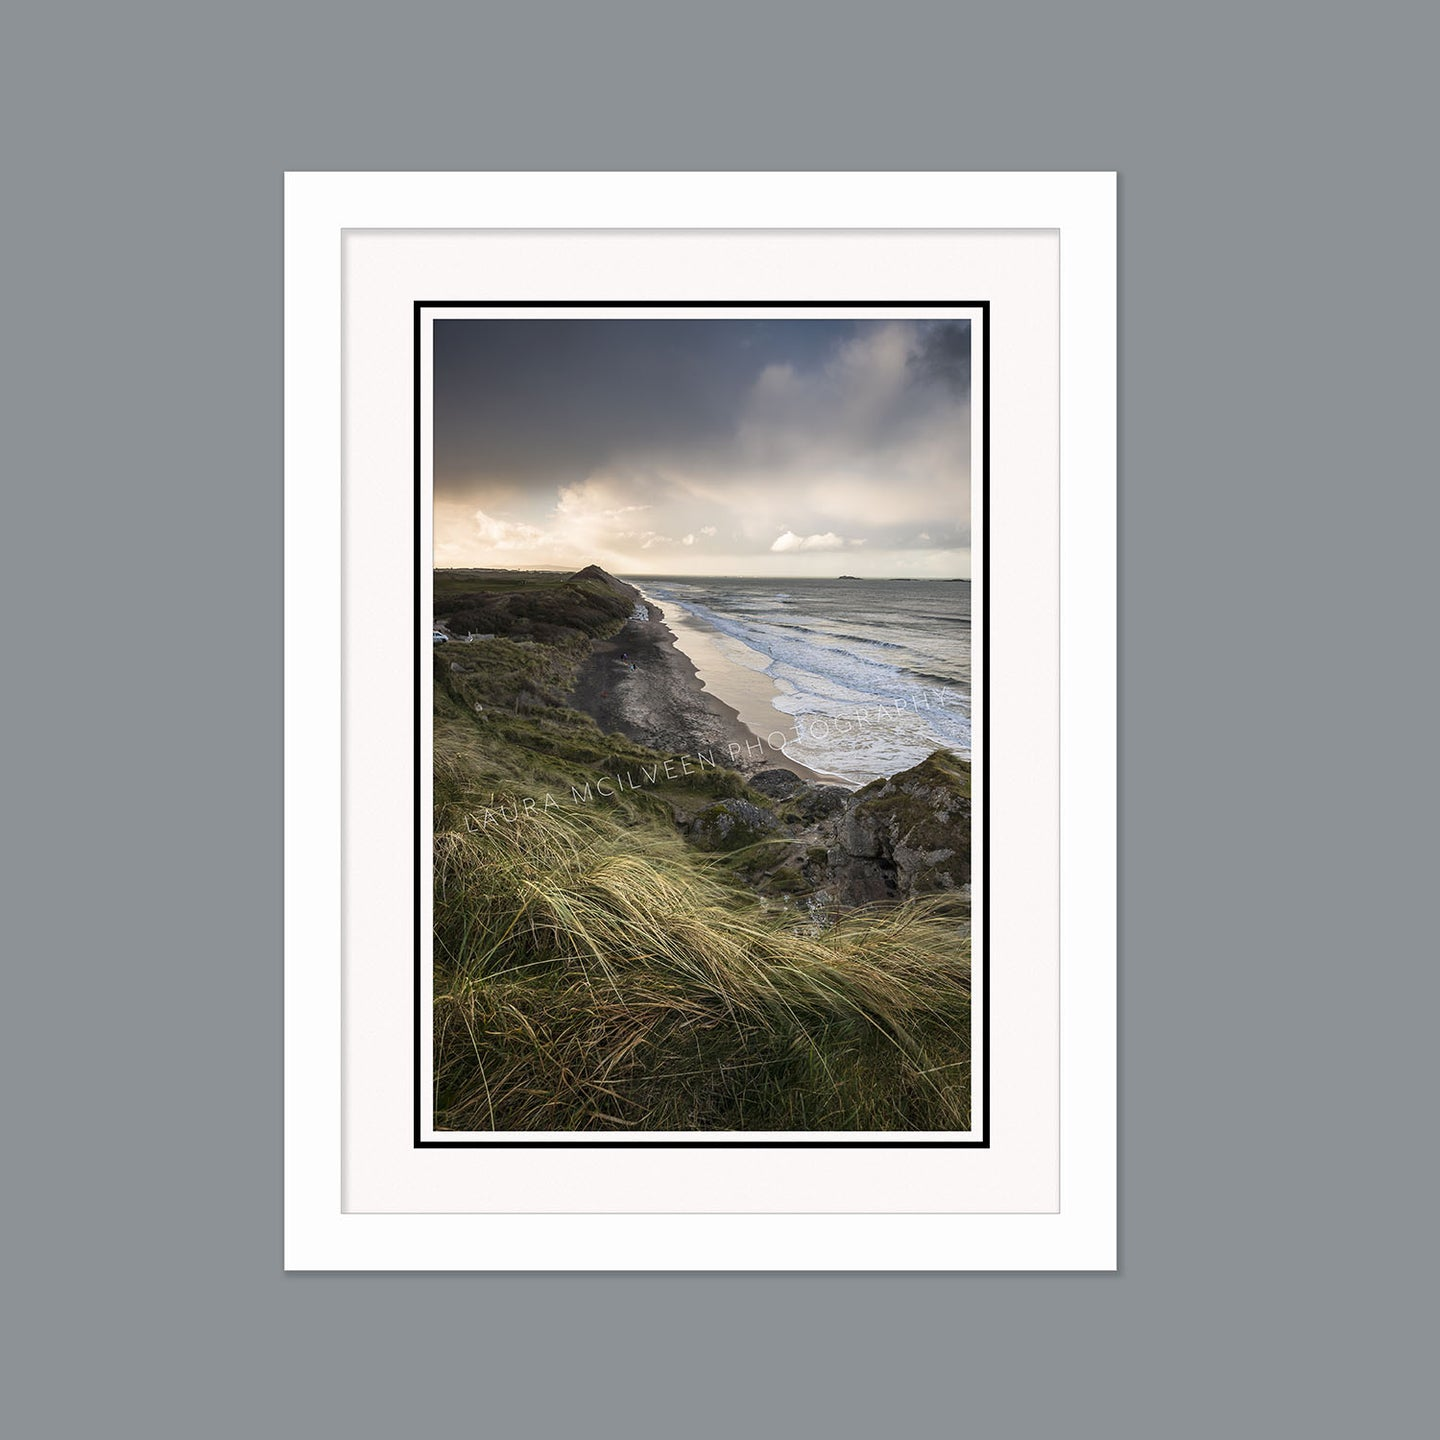 'Weathering the storm' - Whiterocks Beach